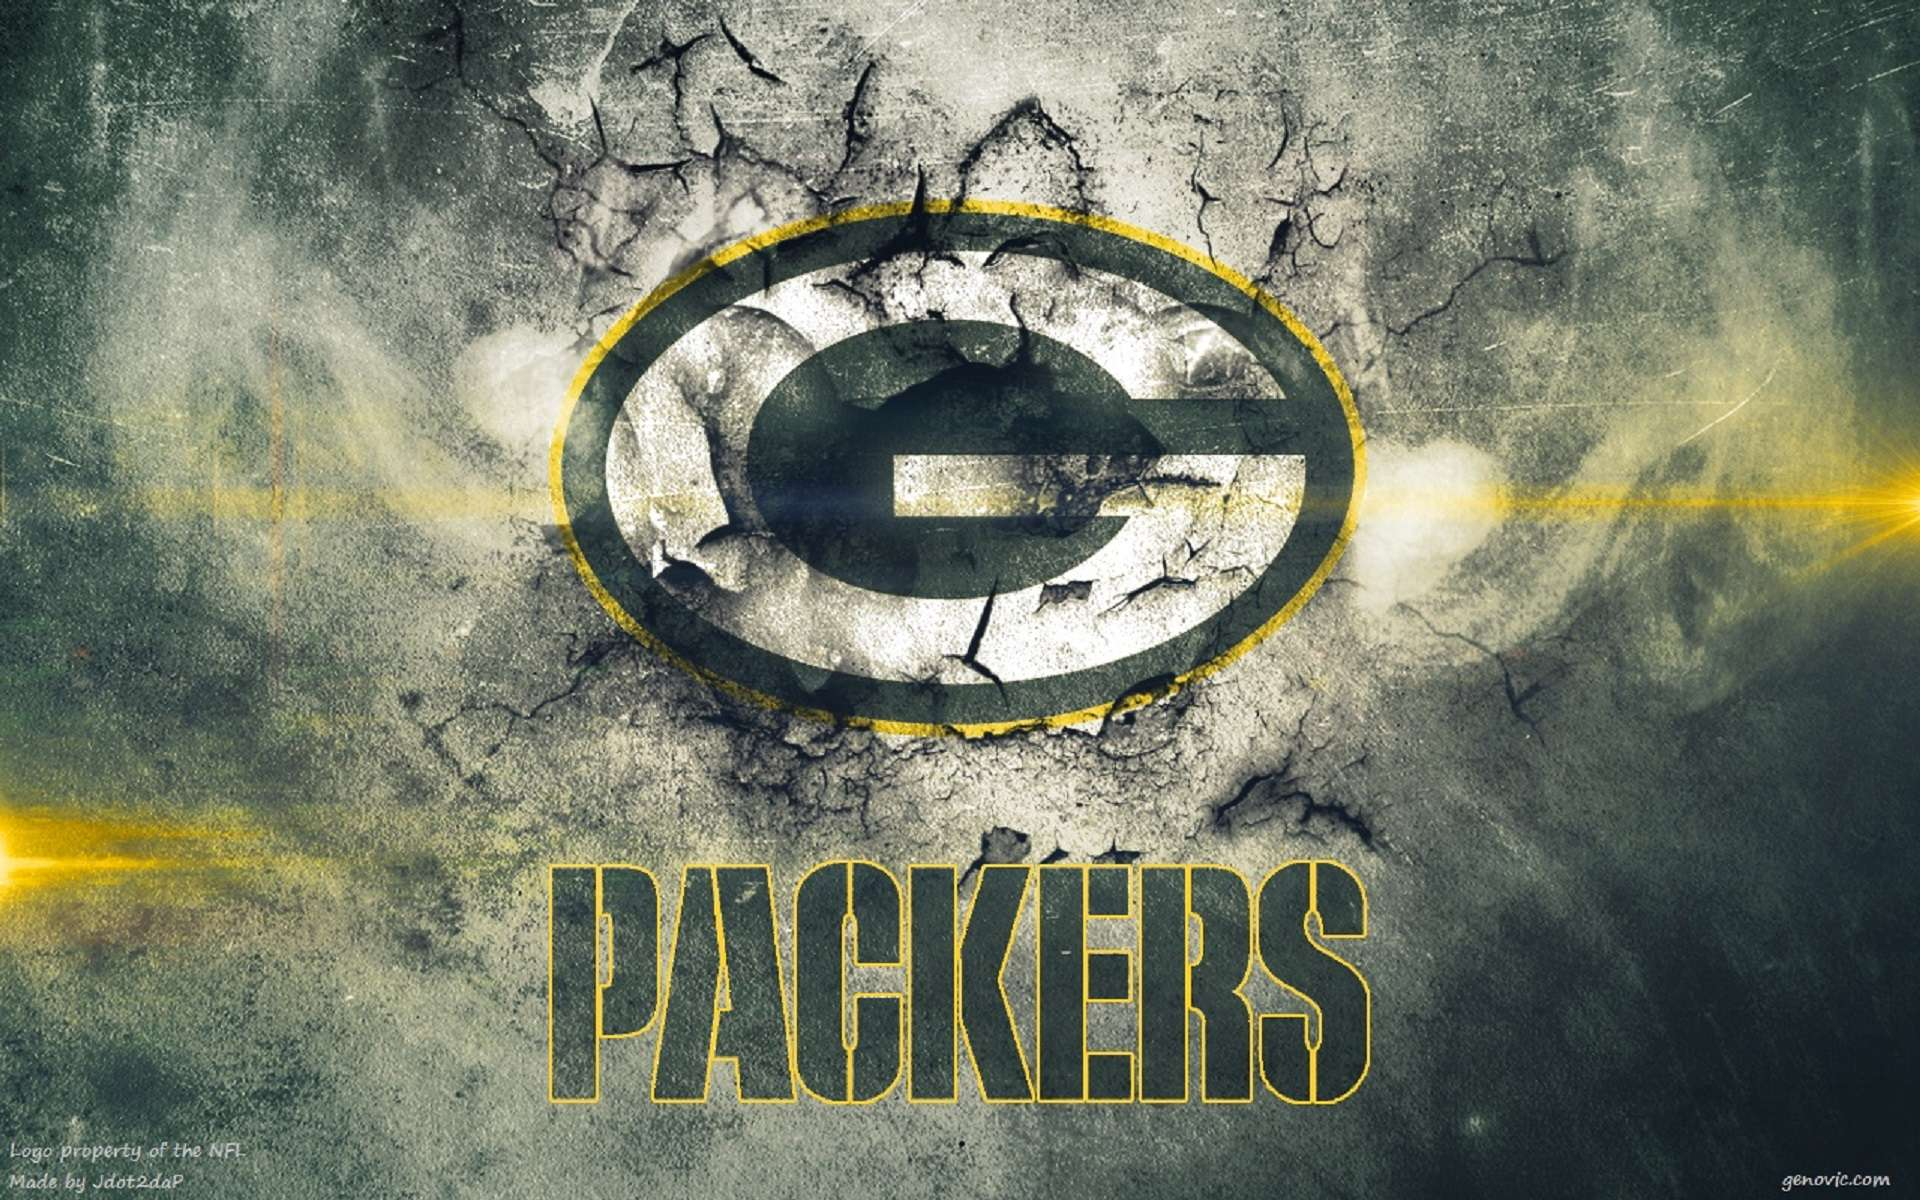 Green Bay Packers 2017 Wallpapers